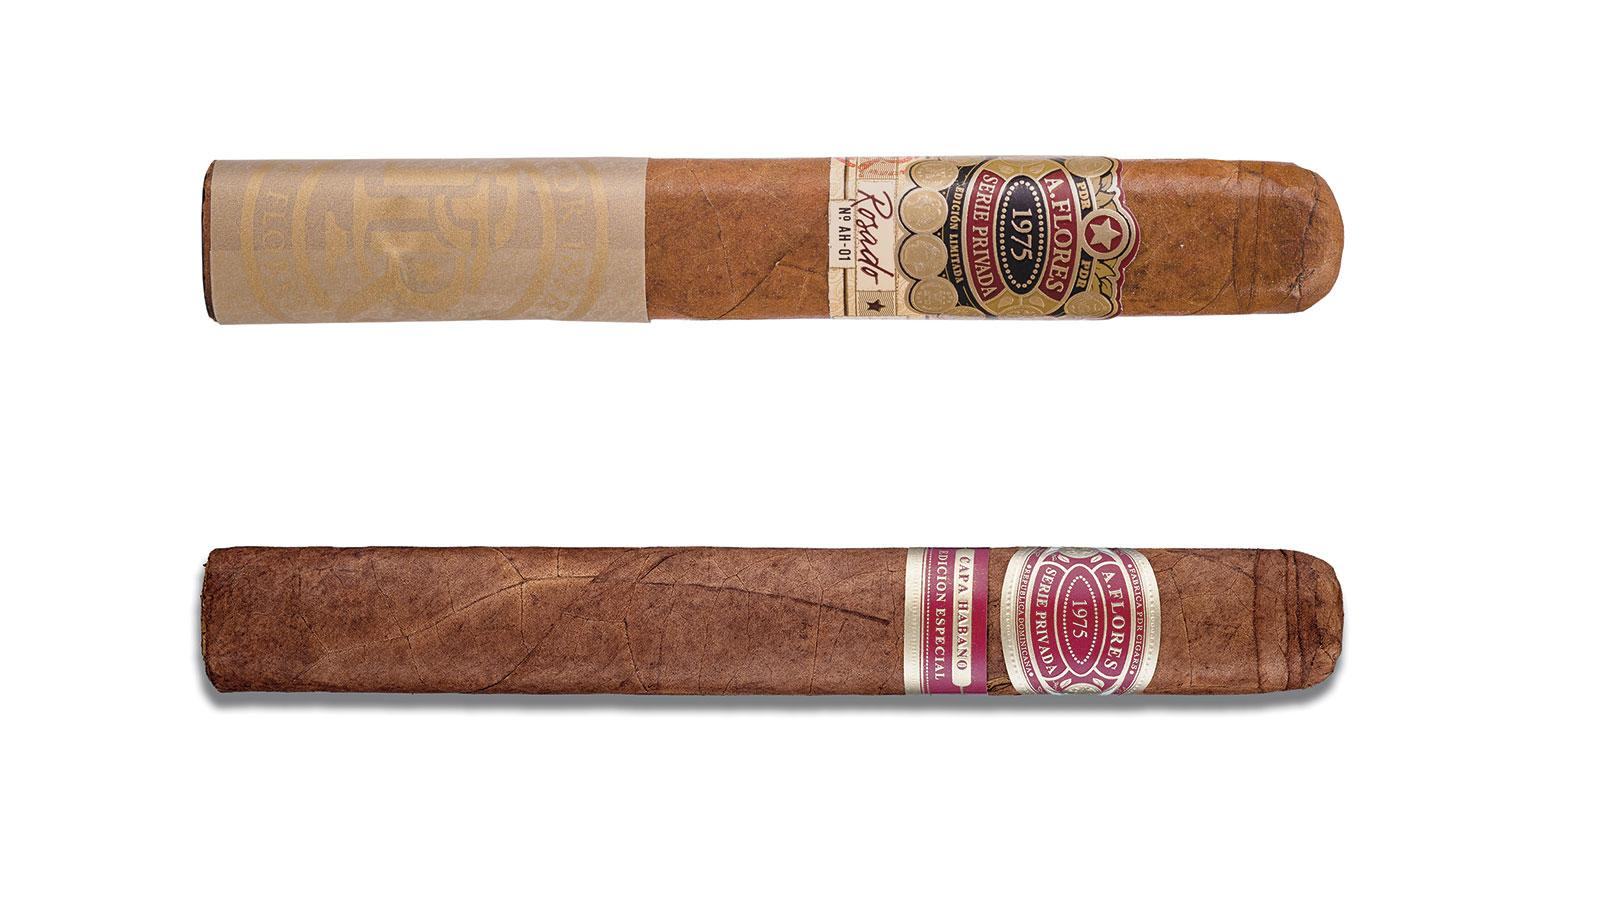 The new A. Flores 1975 Serie Privada (top) compared to the old.